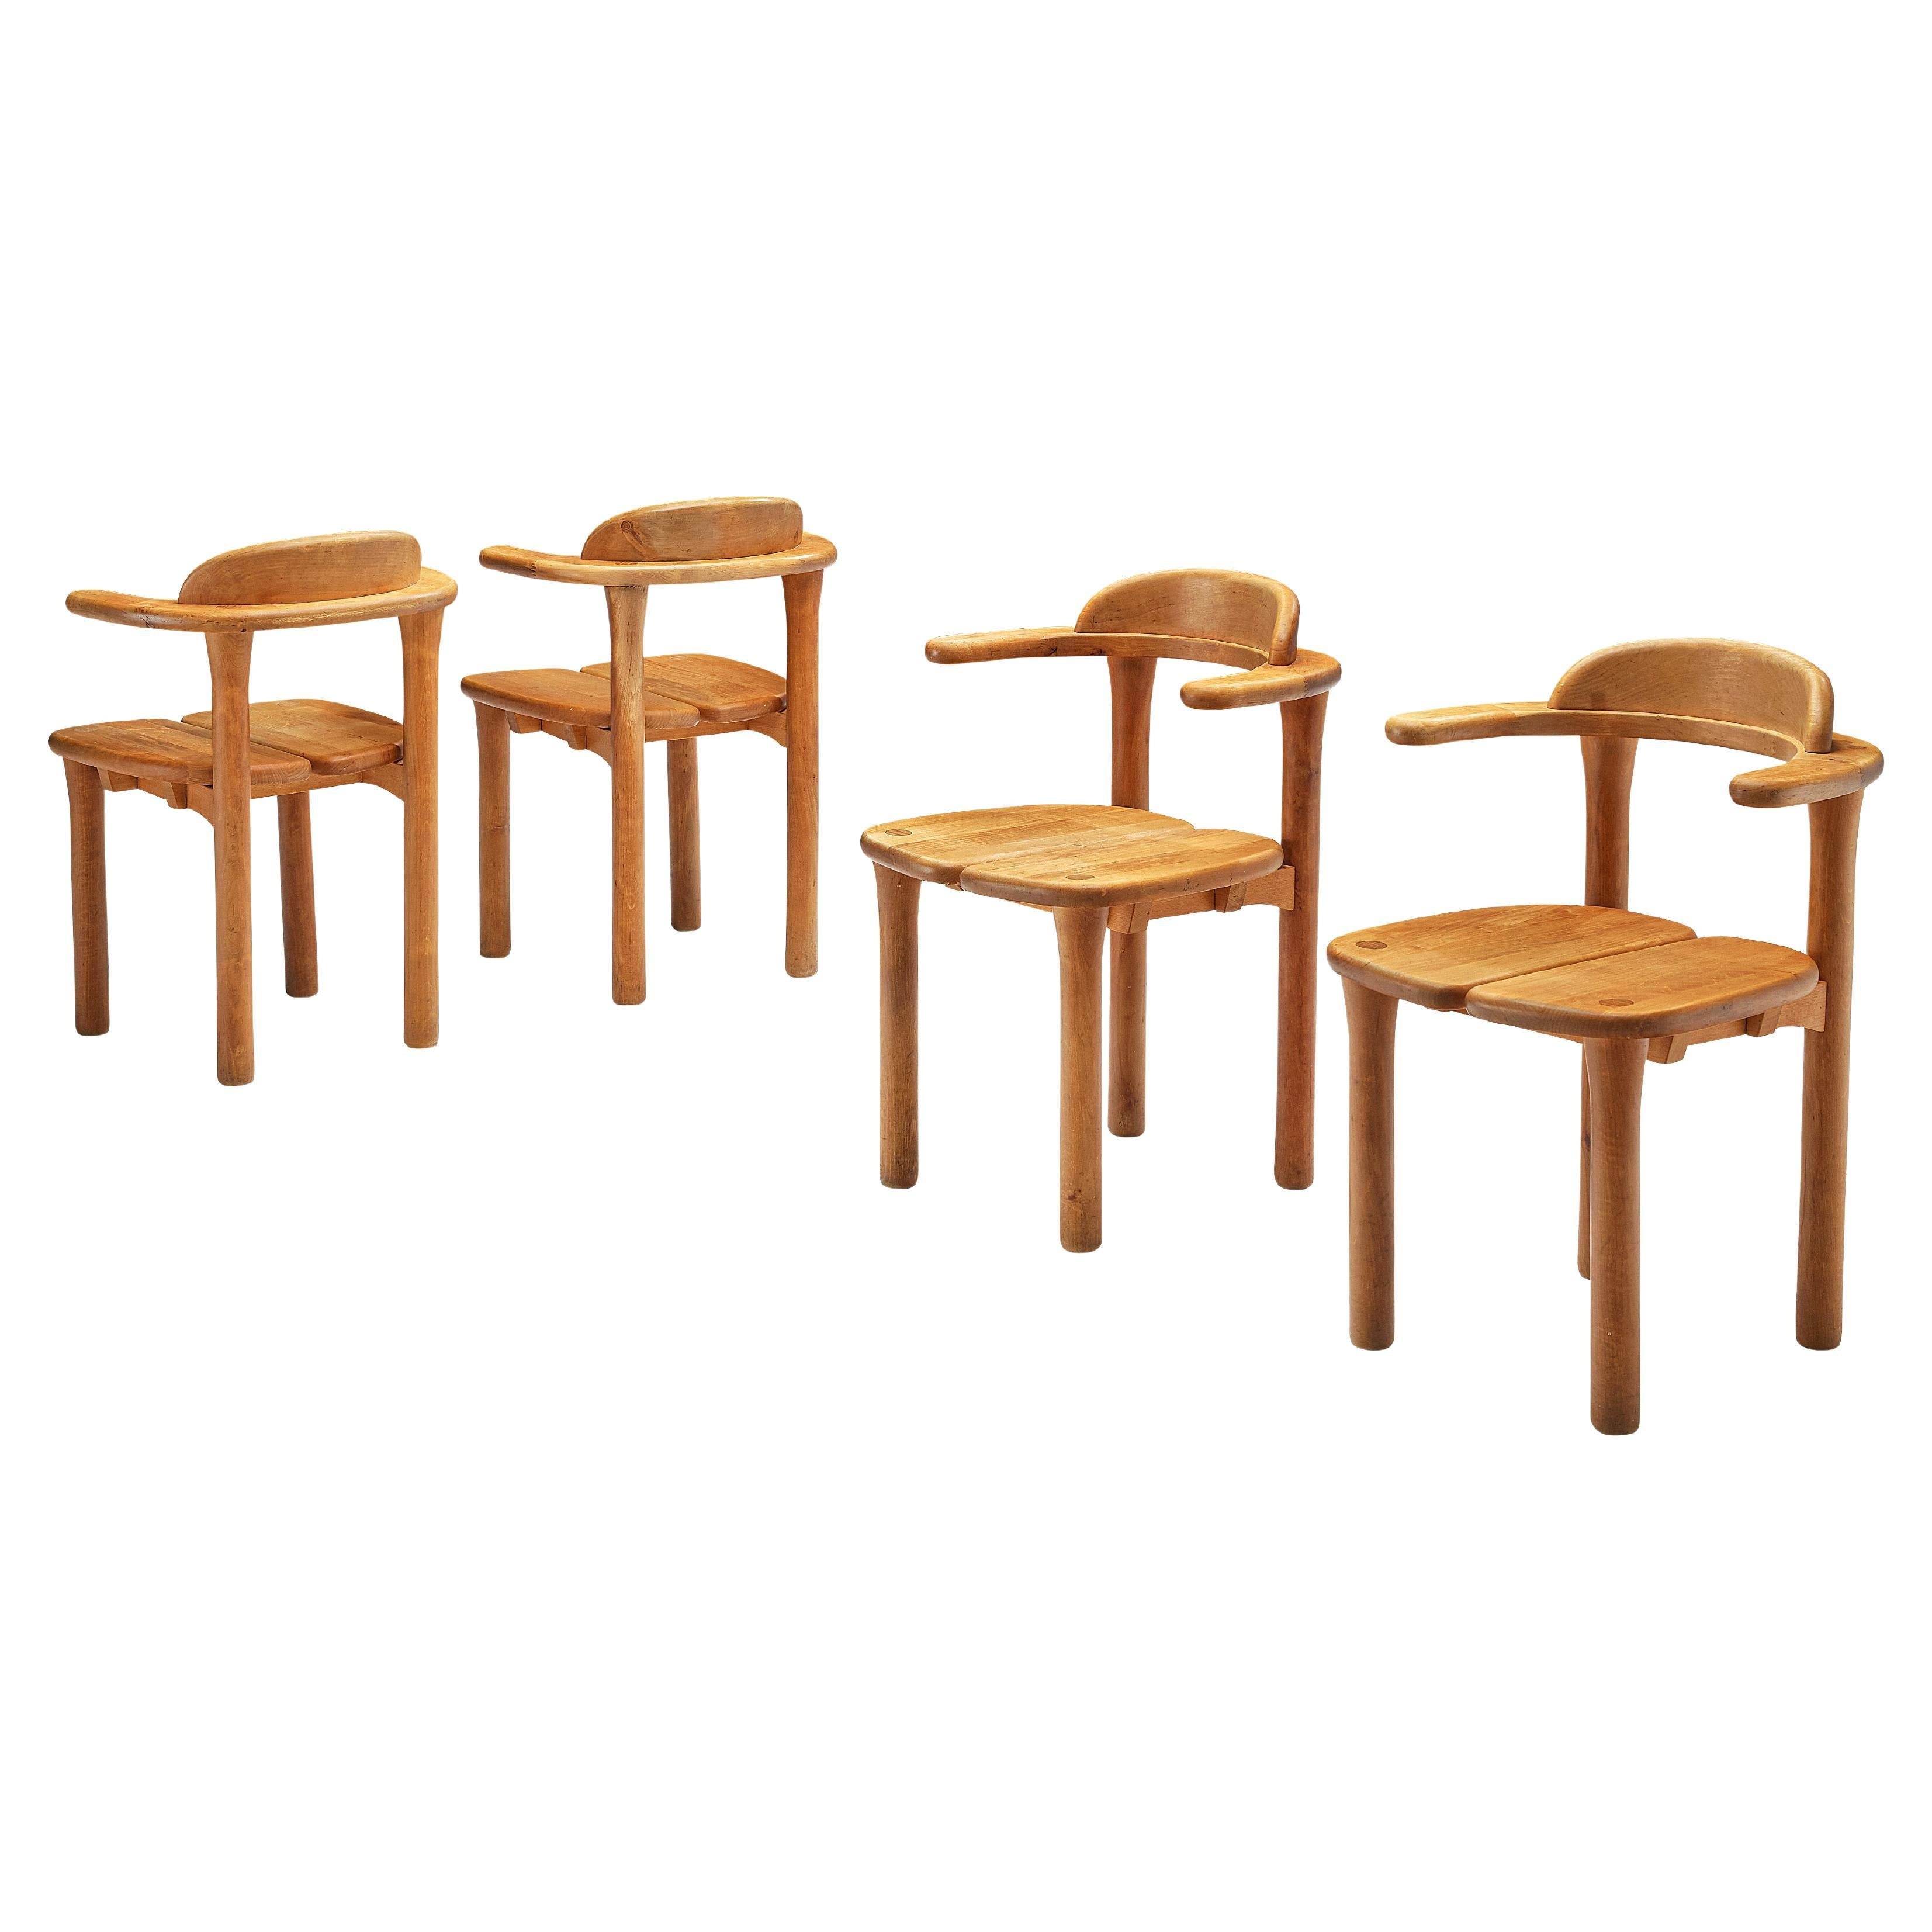 Set of Four Swedish Armchairs in Birch